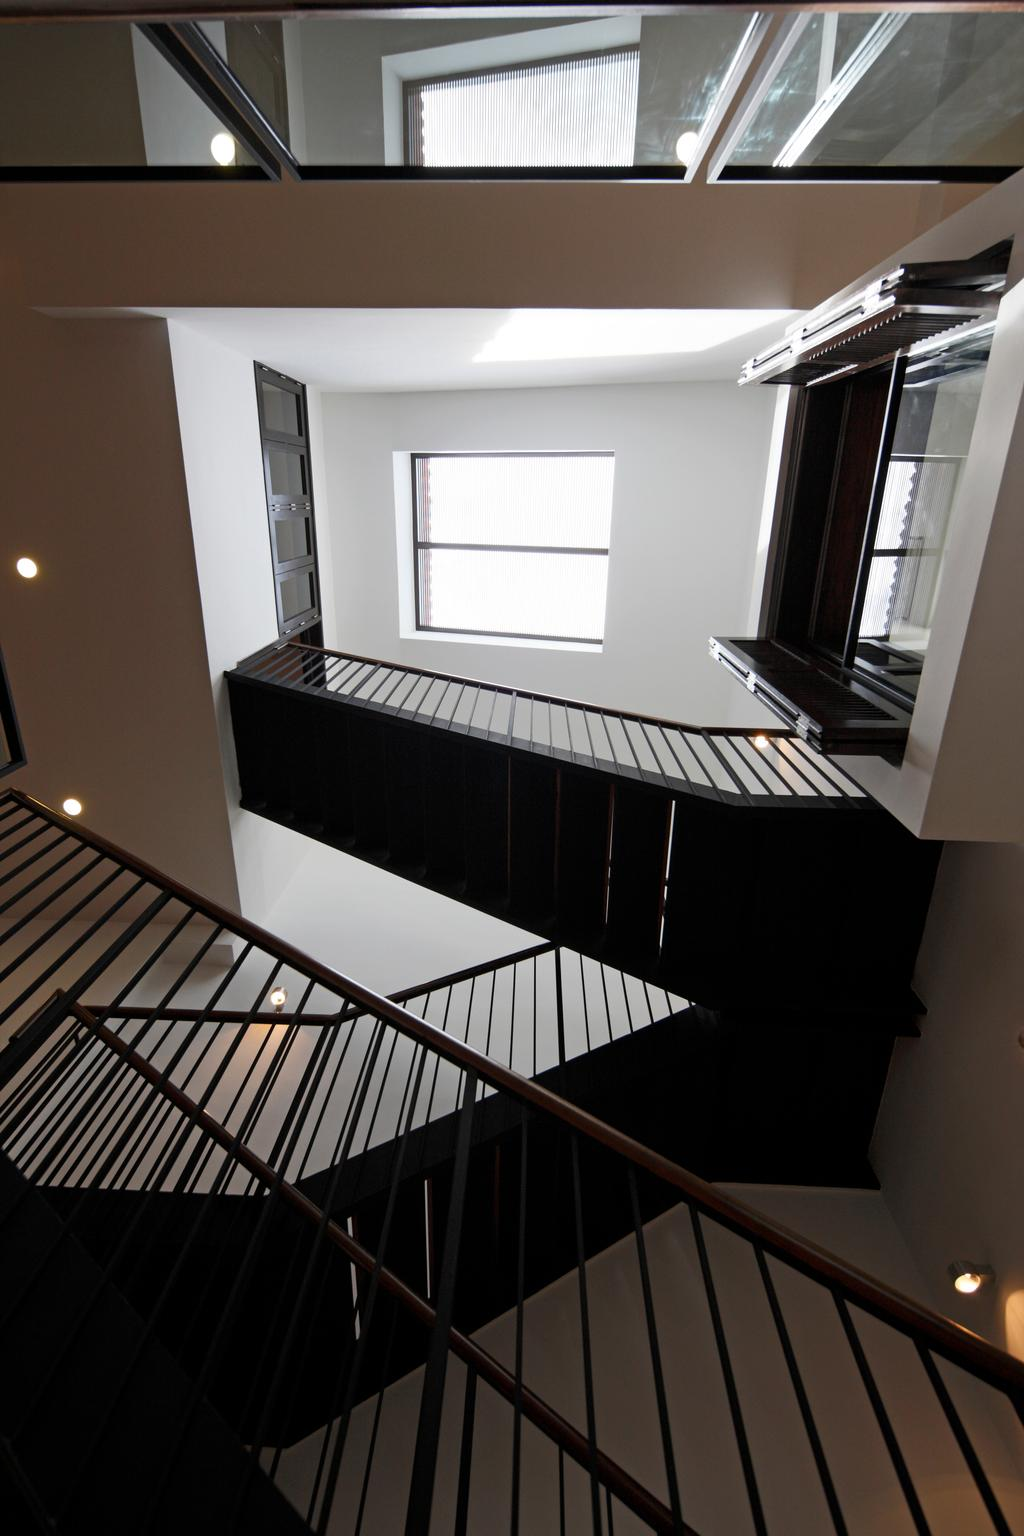 Traditional, Landed, Emerald House, Architect, Lekker Architects, Recessed Lighting, Recessed Lights, Stairway, Banister, Handrail, Staircase, Railing